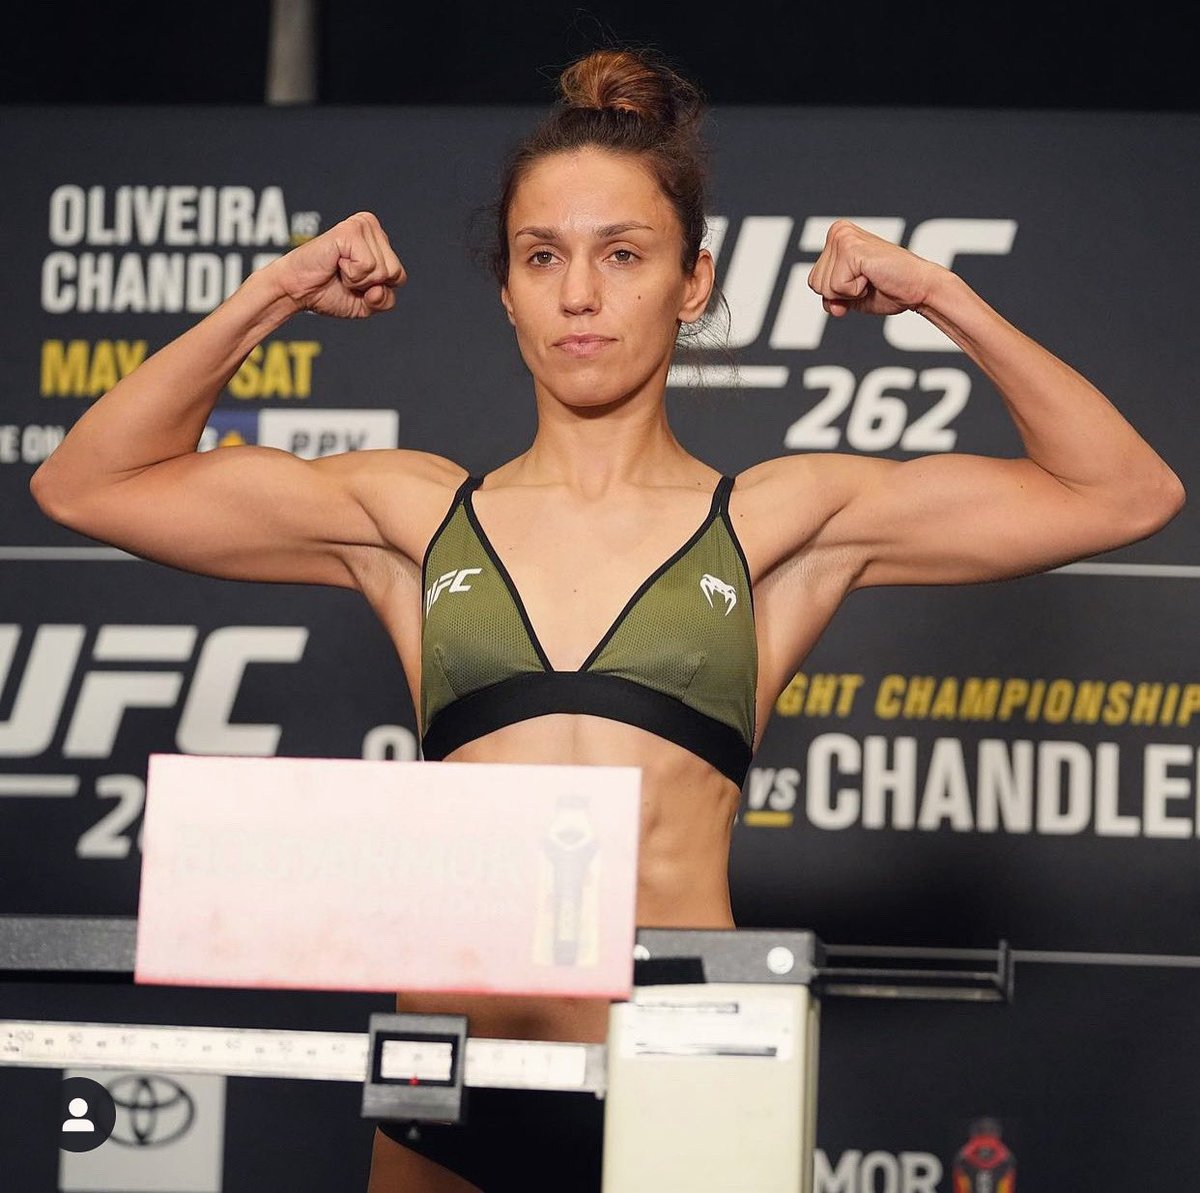 Weight is done 👊🏻 125 lbs for @AntoninaPantera 💪🏻💪🏻💪🏻 Today is recovering all the power 💥 and tomorrow is the fight day ! Let's go my sister! 👊🏻👊🏻👊🏻 @ufc @venum https://t.co/fuvhs2rxjn